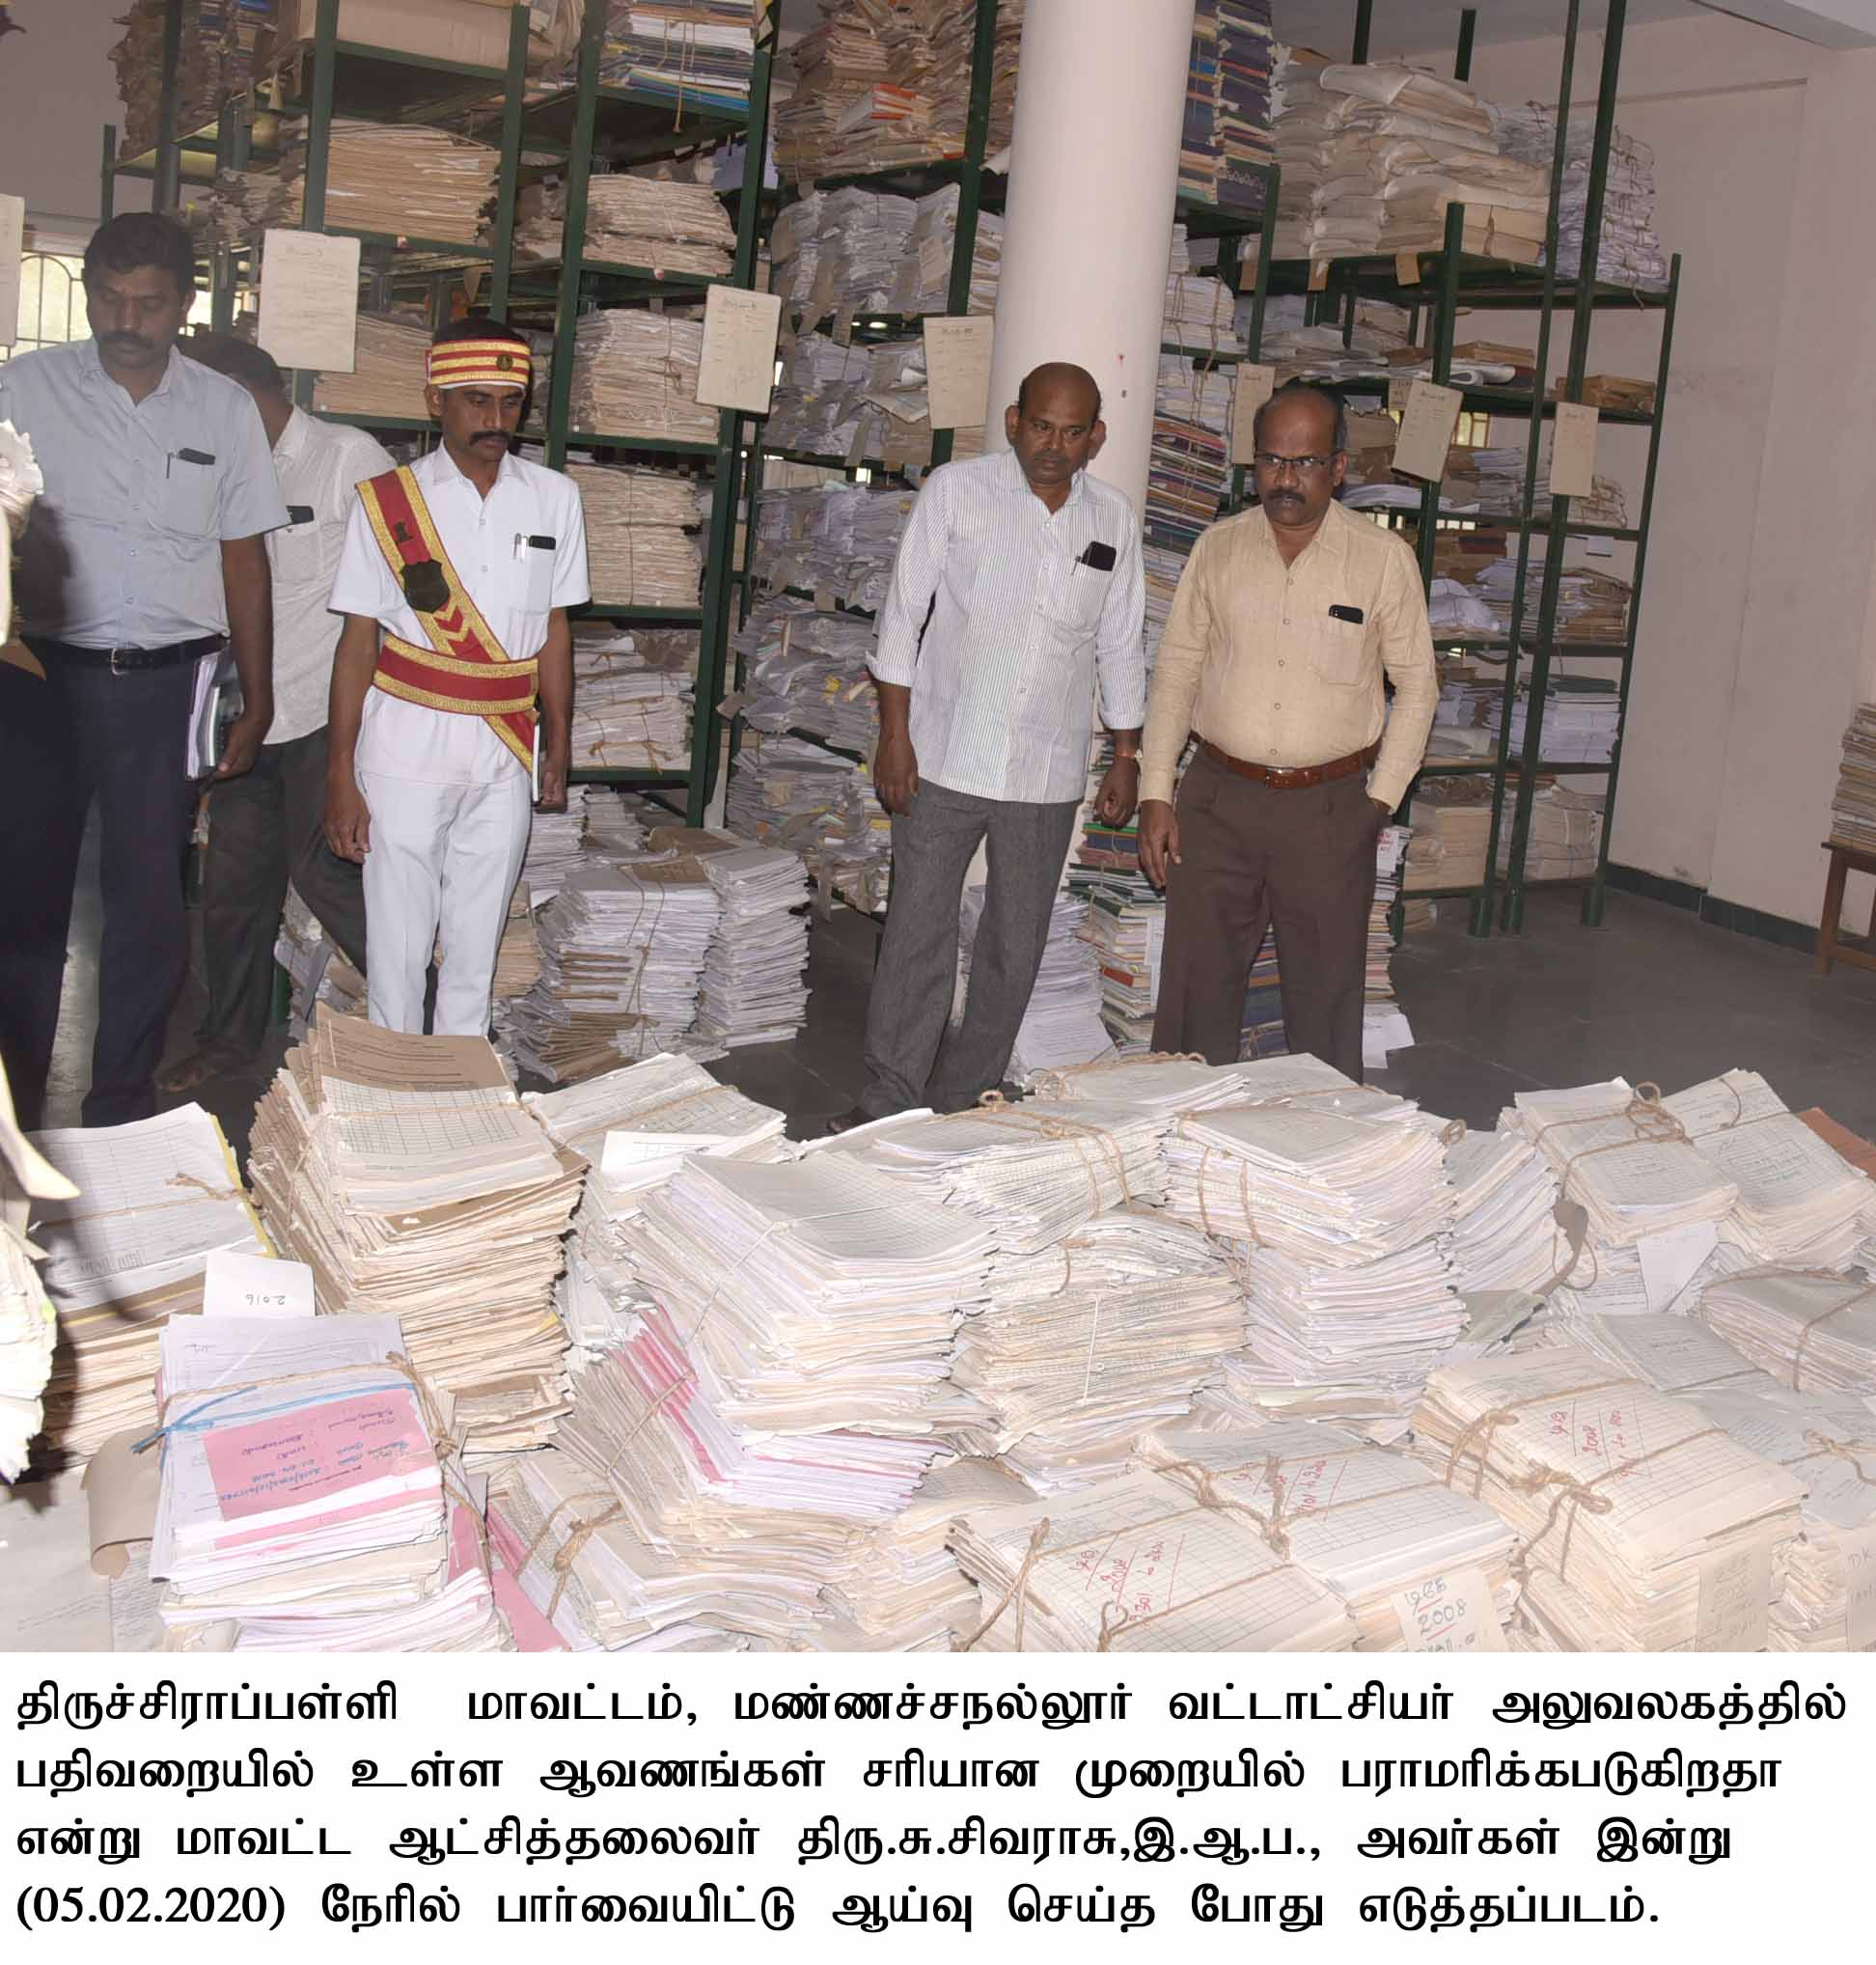 District Collector Inspected the Mannachanallur Taluk Office Record Room